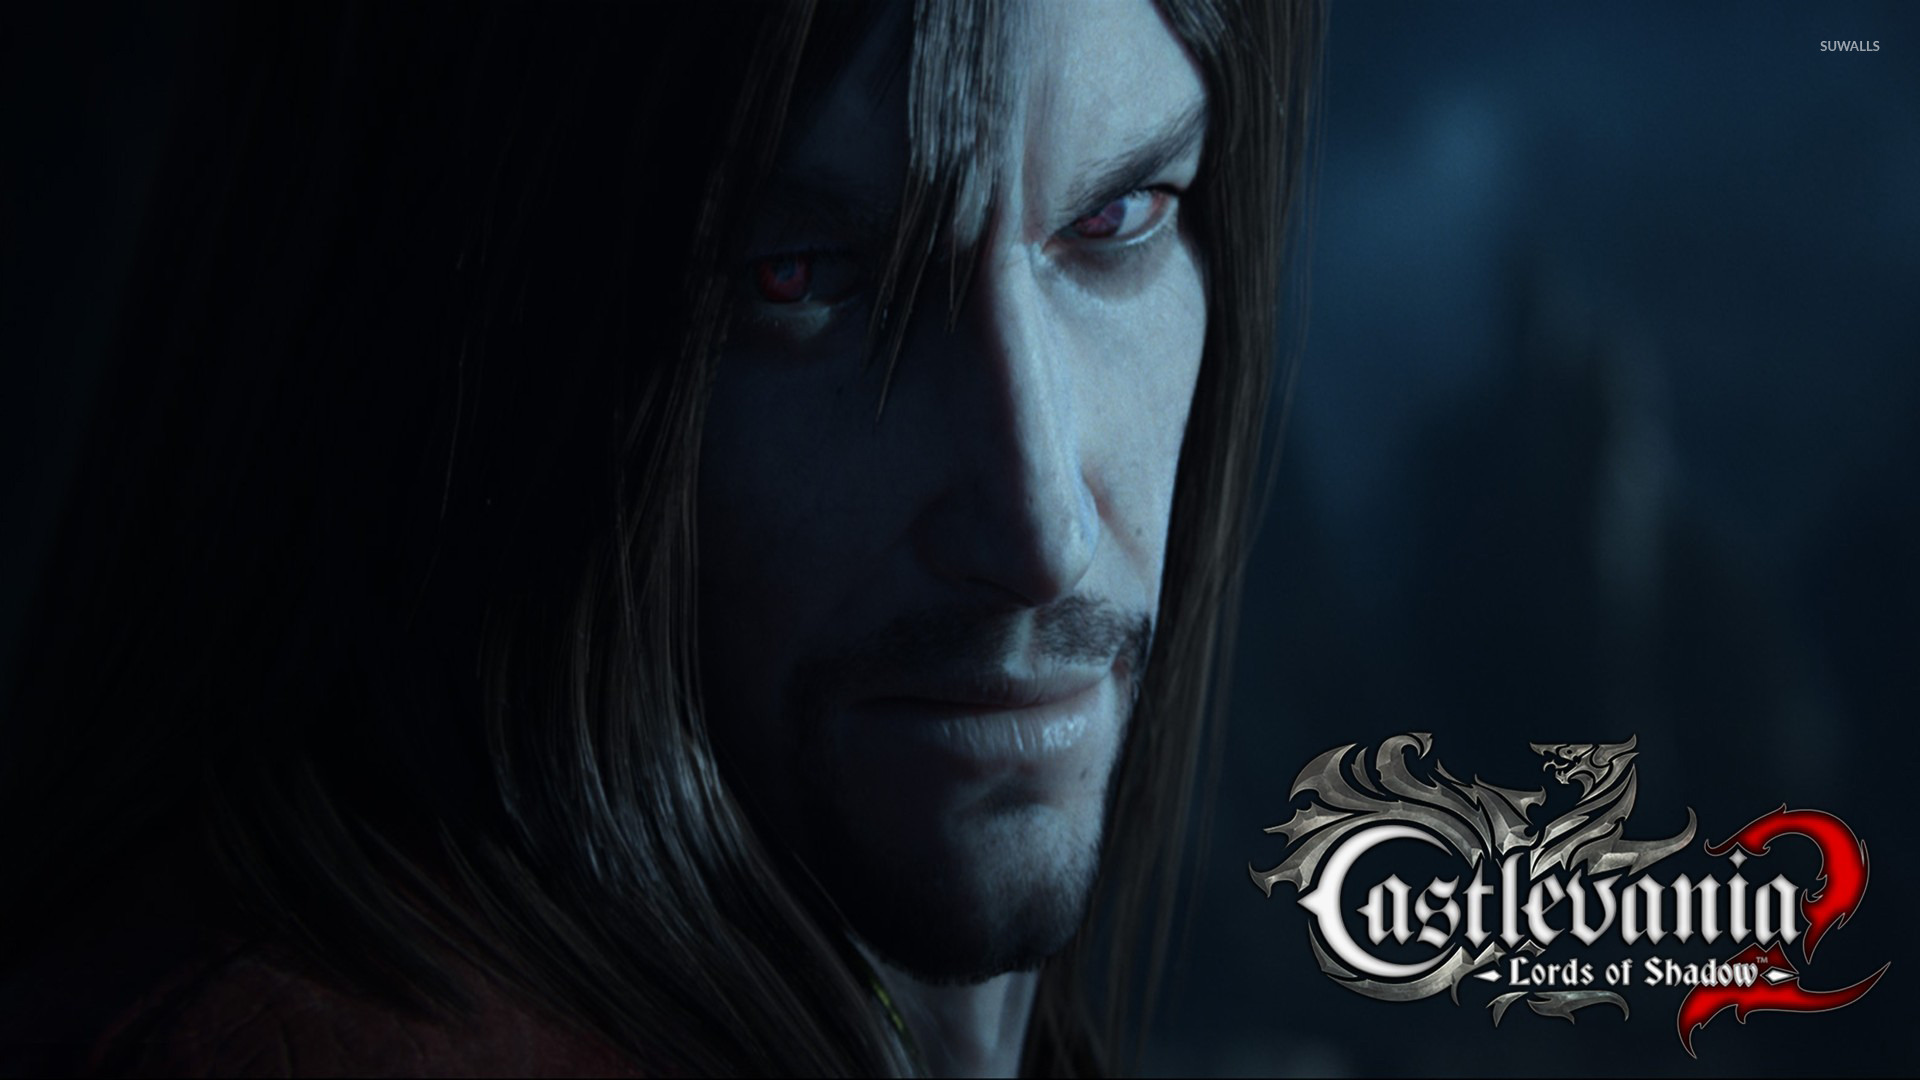 Download Wallpaper Lord Shadows - castlevania-lords-of-shadow-2-18511-1920x1080  Gallery_74415.jpg